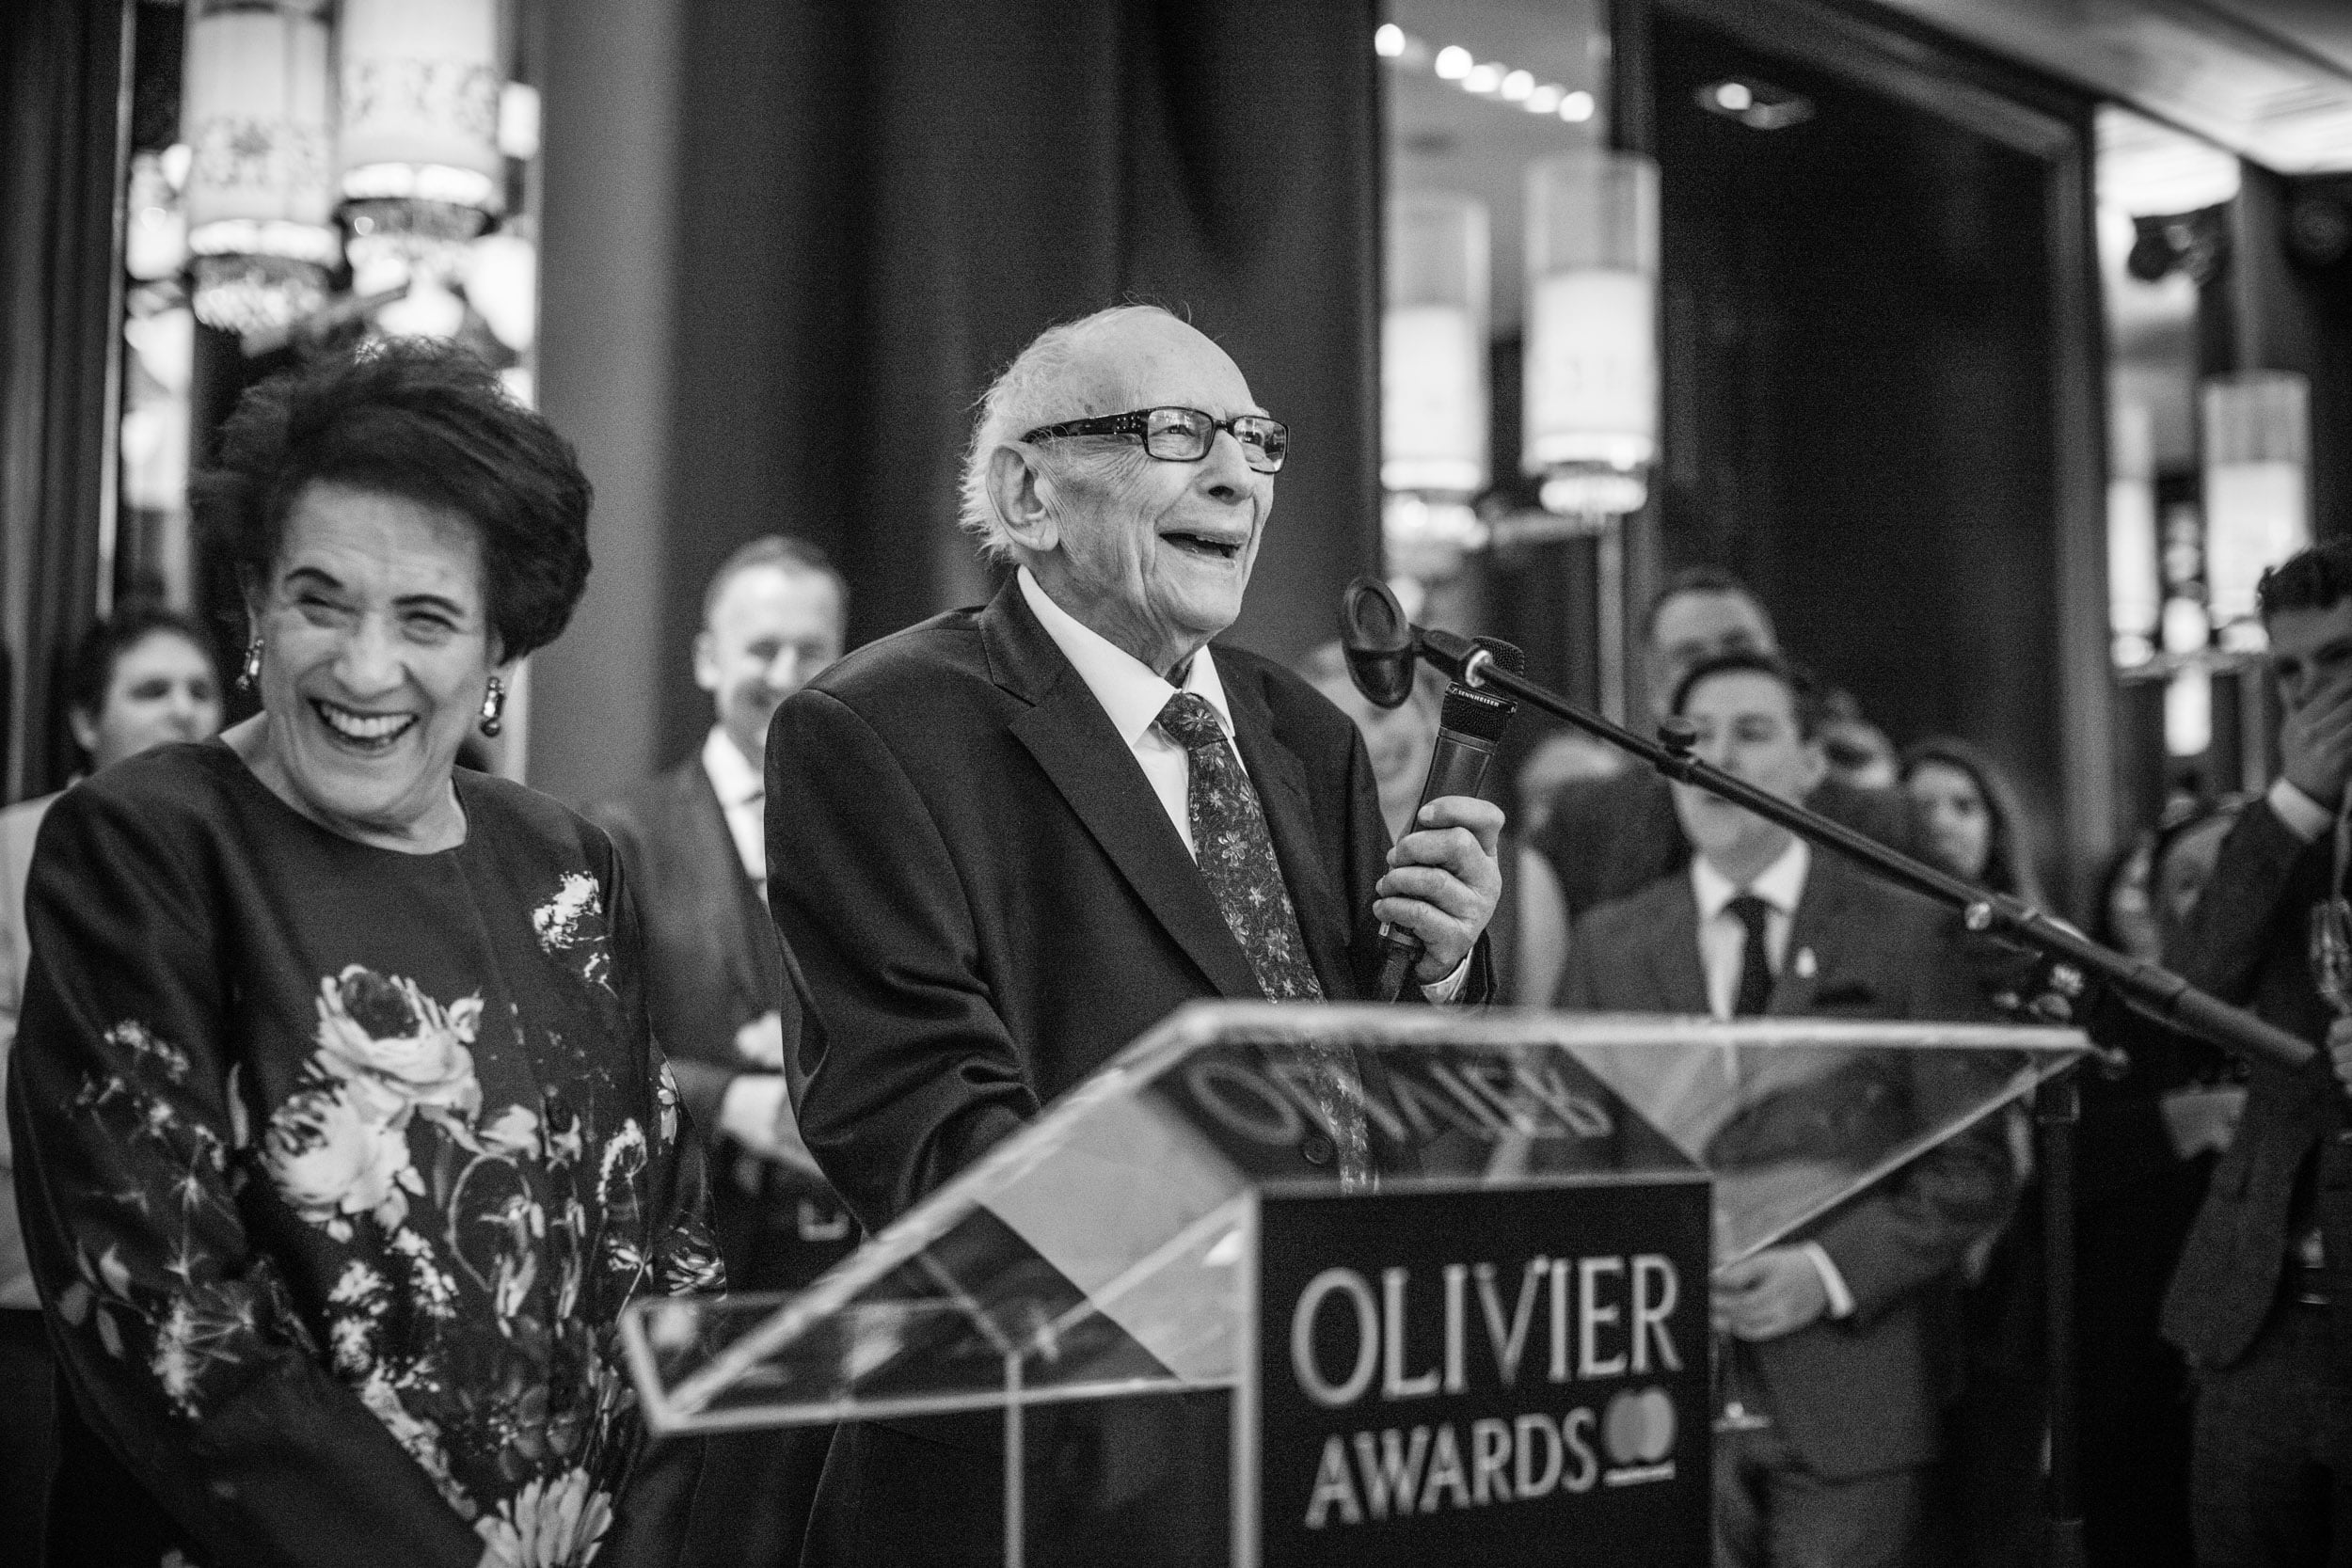 Lilian and Victor Hochhauser receiving the Special Recognition Award at the Olivier Awards 2017